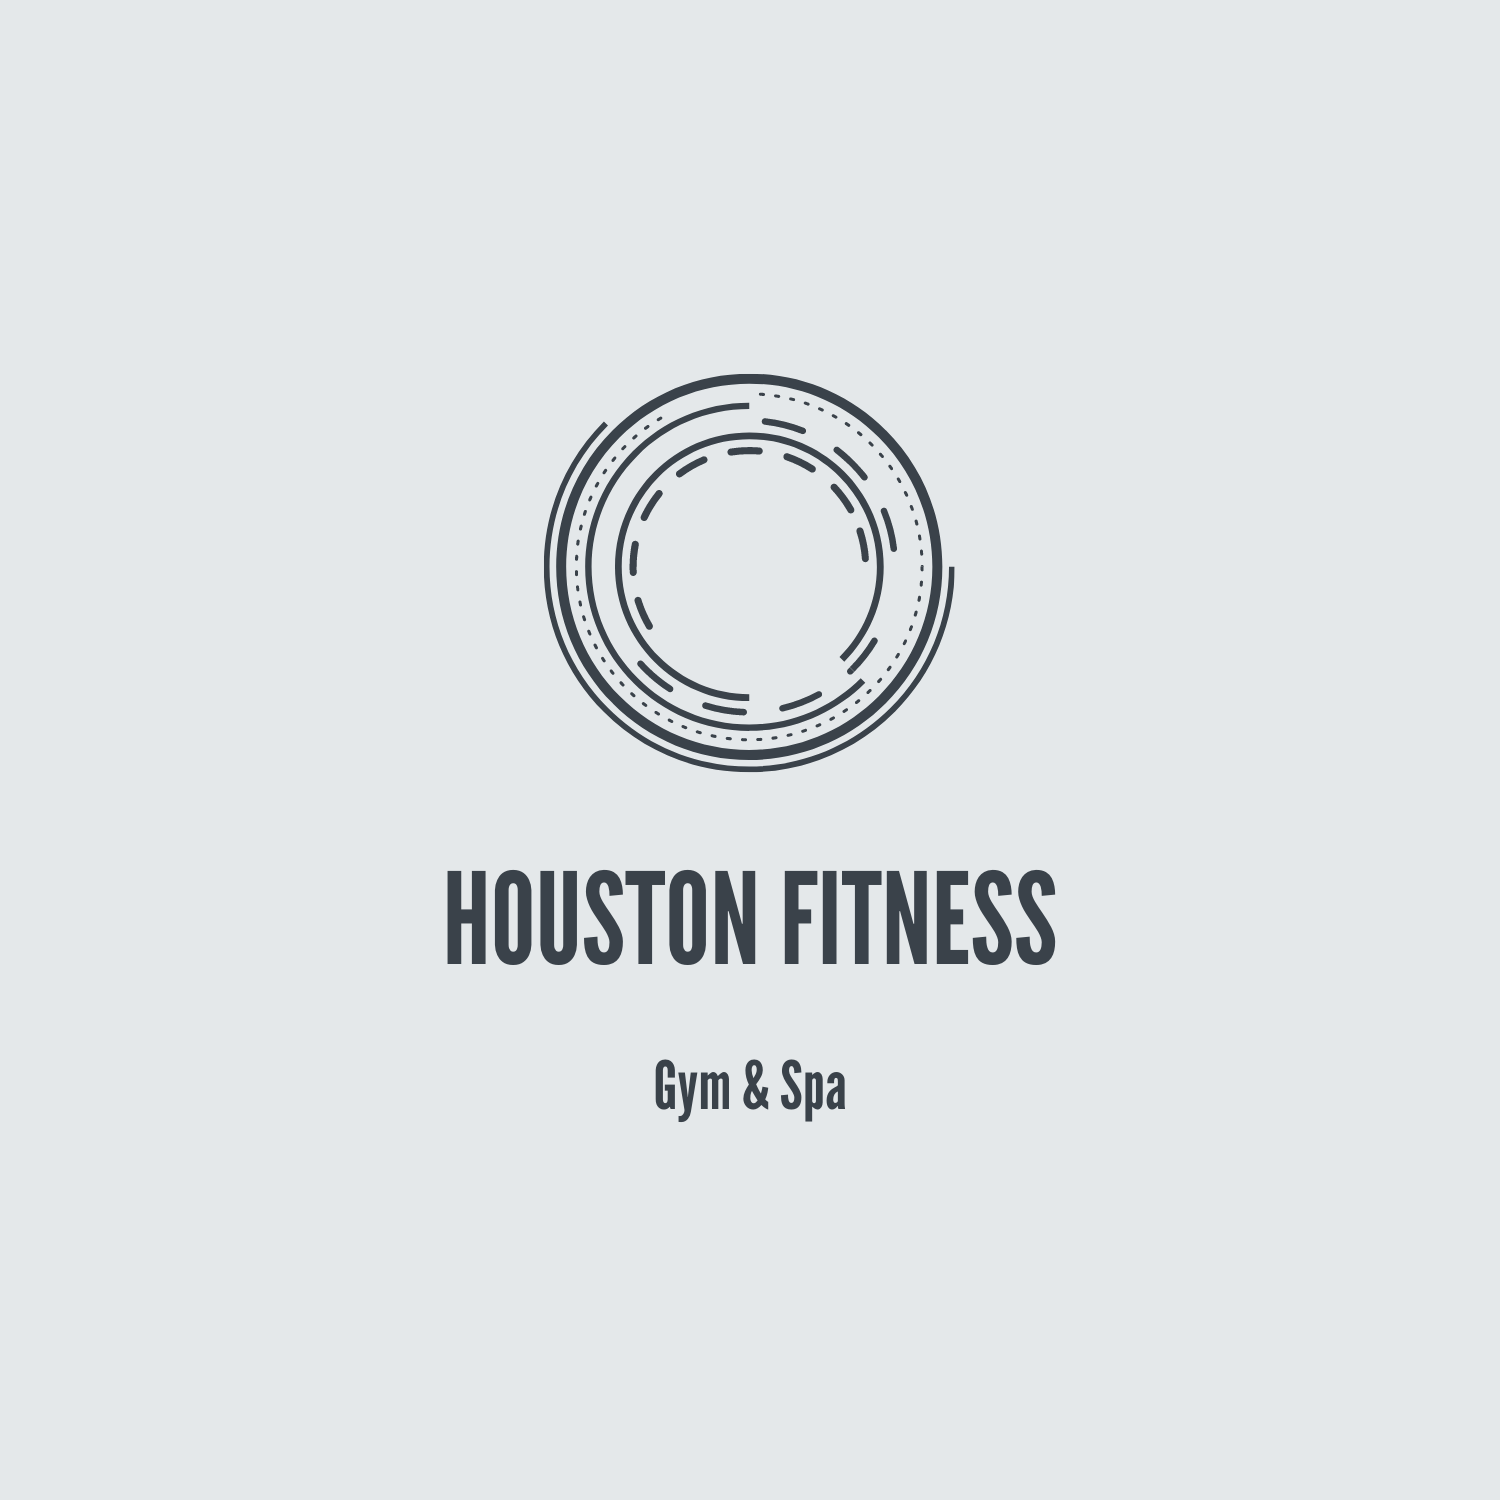 https://kpiteng.com/assets/our-work/app-icon/houston-fitness.png